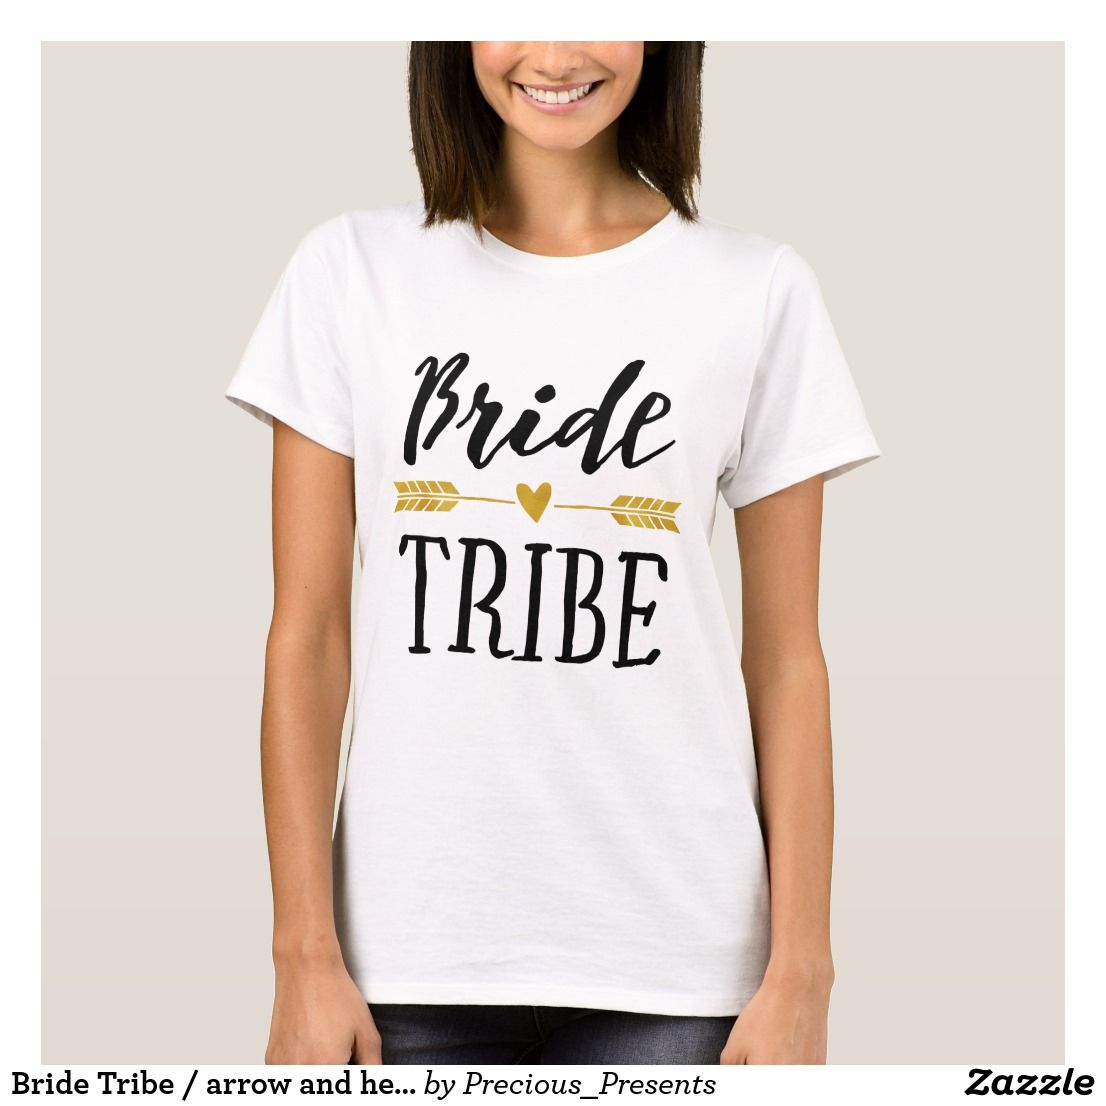 05bf336f9c89d Bride Tribe / arrow and heart T-Shirt | Zazzle.com in 2019 ...